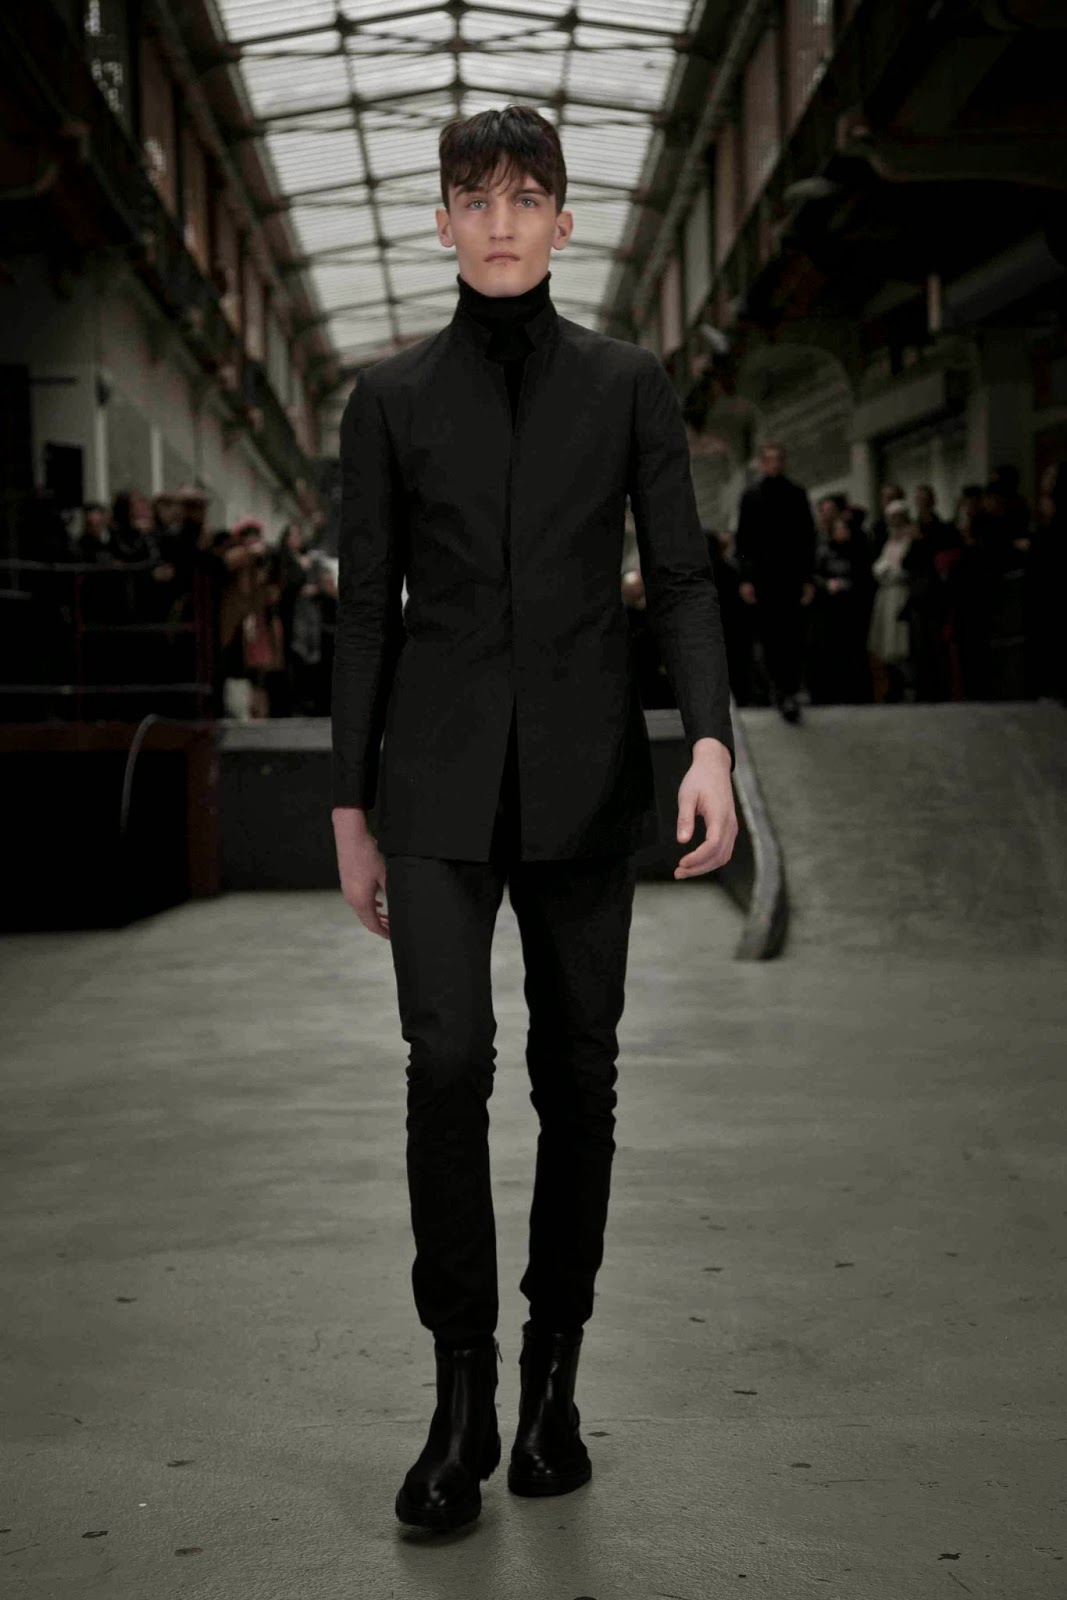 Y-Project, YPROJECT, Glenn-Martens, marque-parisienne, mode-masculine, mode-homme, style-urbain, pfw, pfwreview, paris-fashion-week, paris-fashion-week-review, fashion-week, milan-fashion-week, haute-couture, chanel, fashion-week, fashion-week-paris, womenswear, menswear, du-dessin-aux-podiums, mercedes-benz-fashion-week, fashion-clothing, pret-a-porter, pap, blog, blogger, template-blogger, mode-femme, blog-mode-femme, site-mode-femme, mode-femme-grande-taille, mode-femme-enceinte, vetements-femme-fashion, automne-hiver, fall-winter, automn-winter